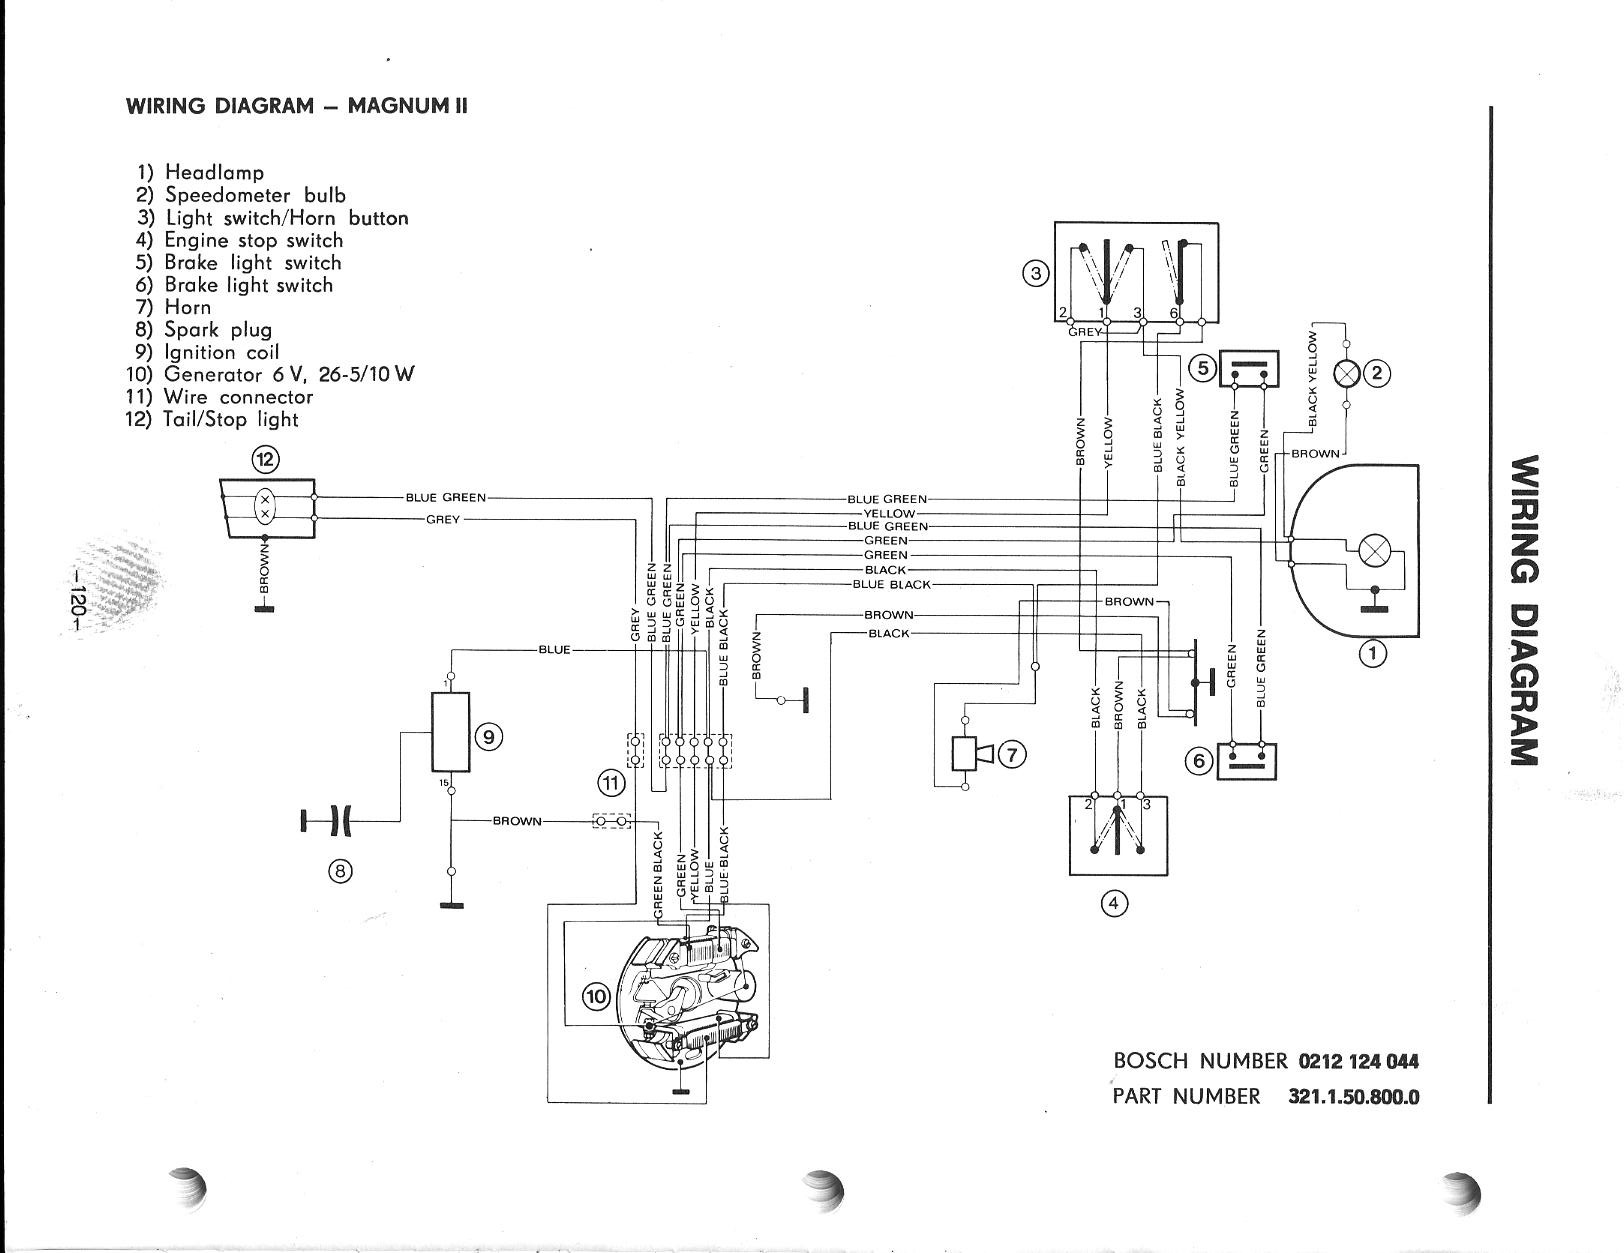 Puch Moped Wiring Diagram Manual Guide Tomos Newport Free Engine Image For User Download 250 Gs